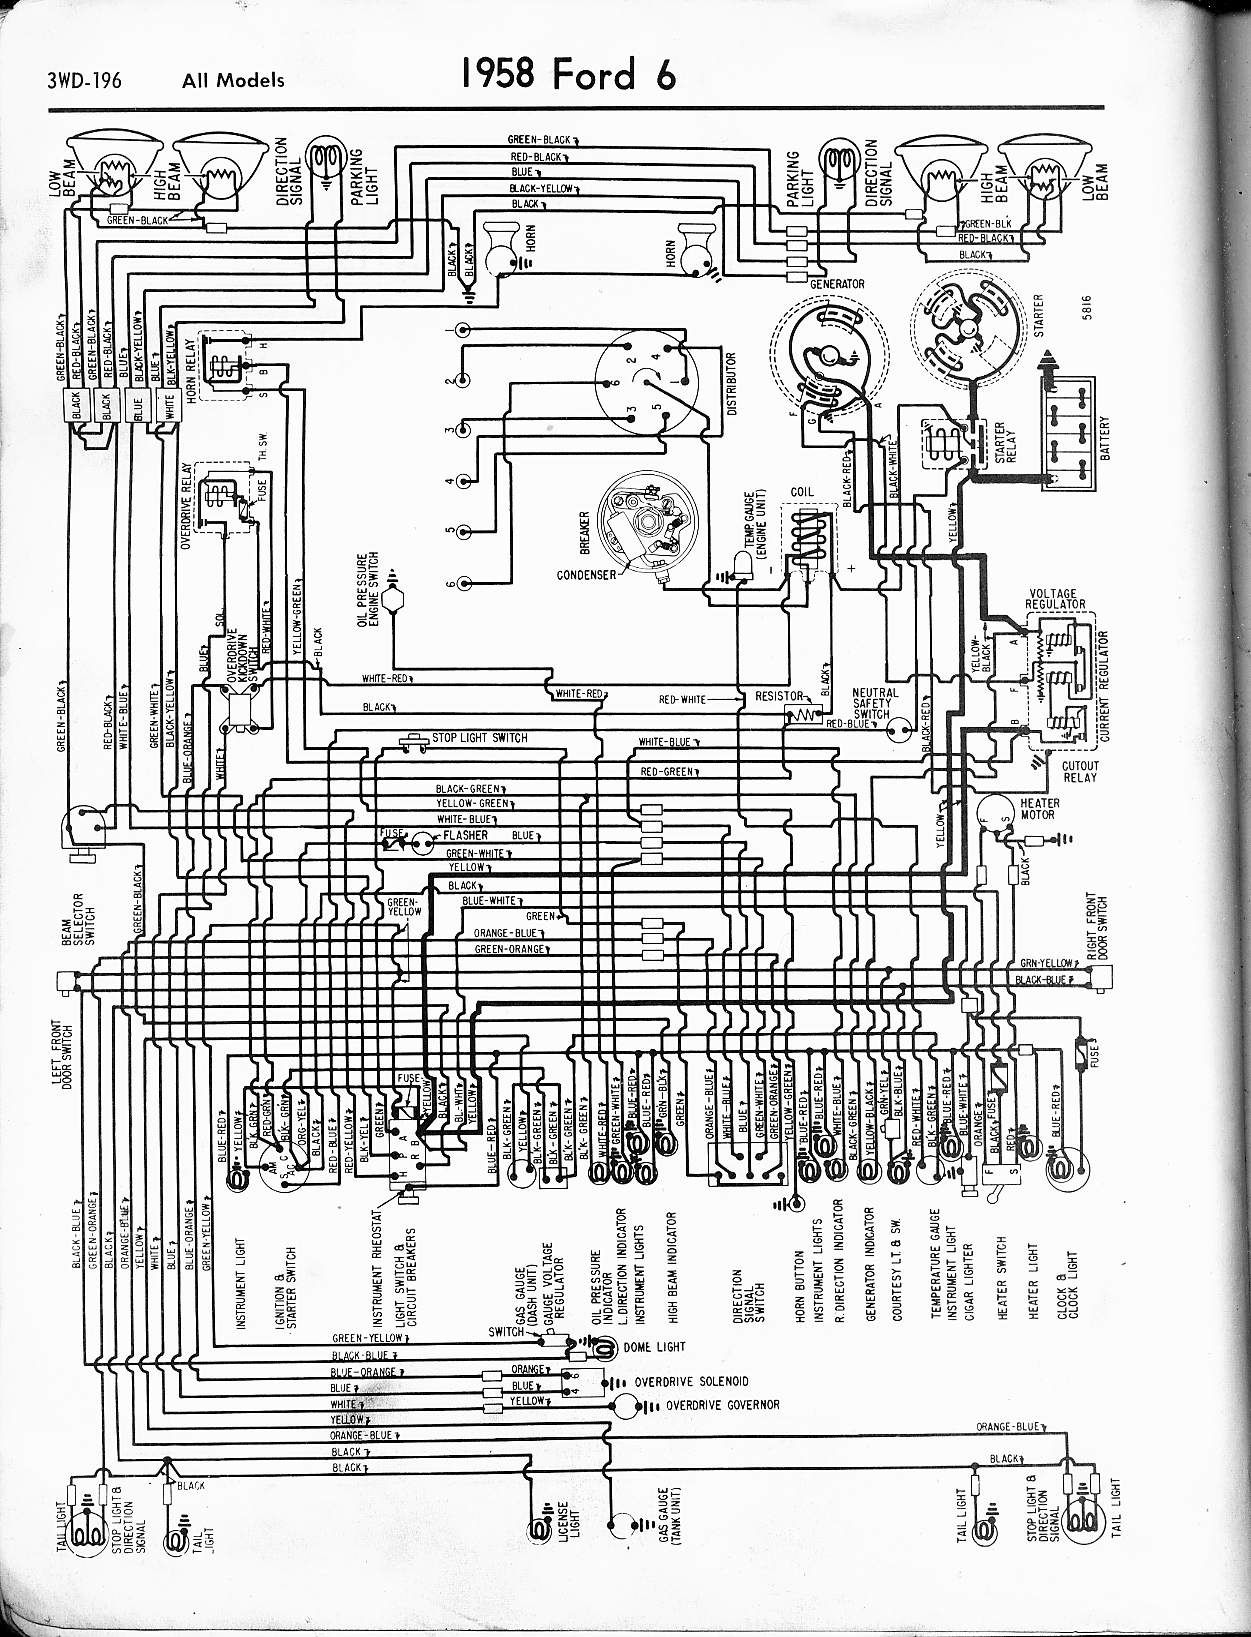 1966 ranchero wiring diagram wiring diagram autovehicle 1964 ranchero wiring diagram wiring library